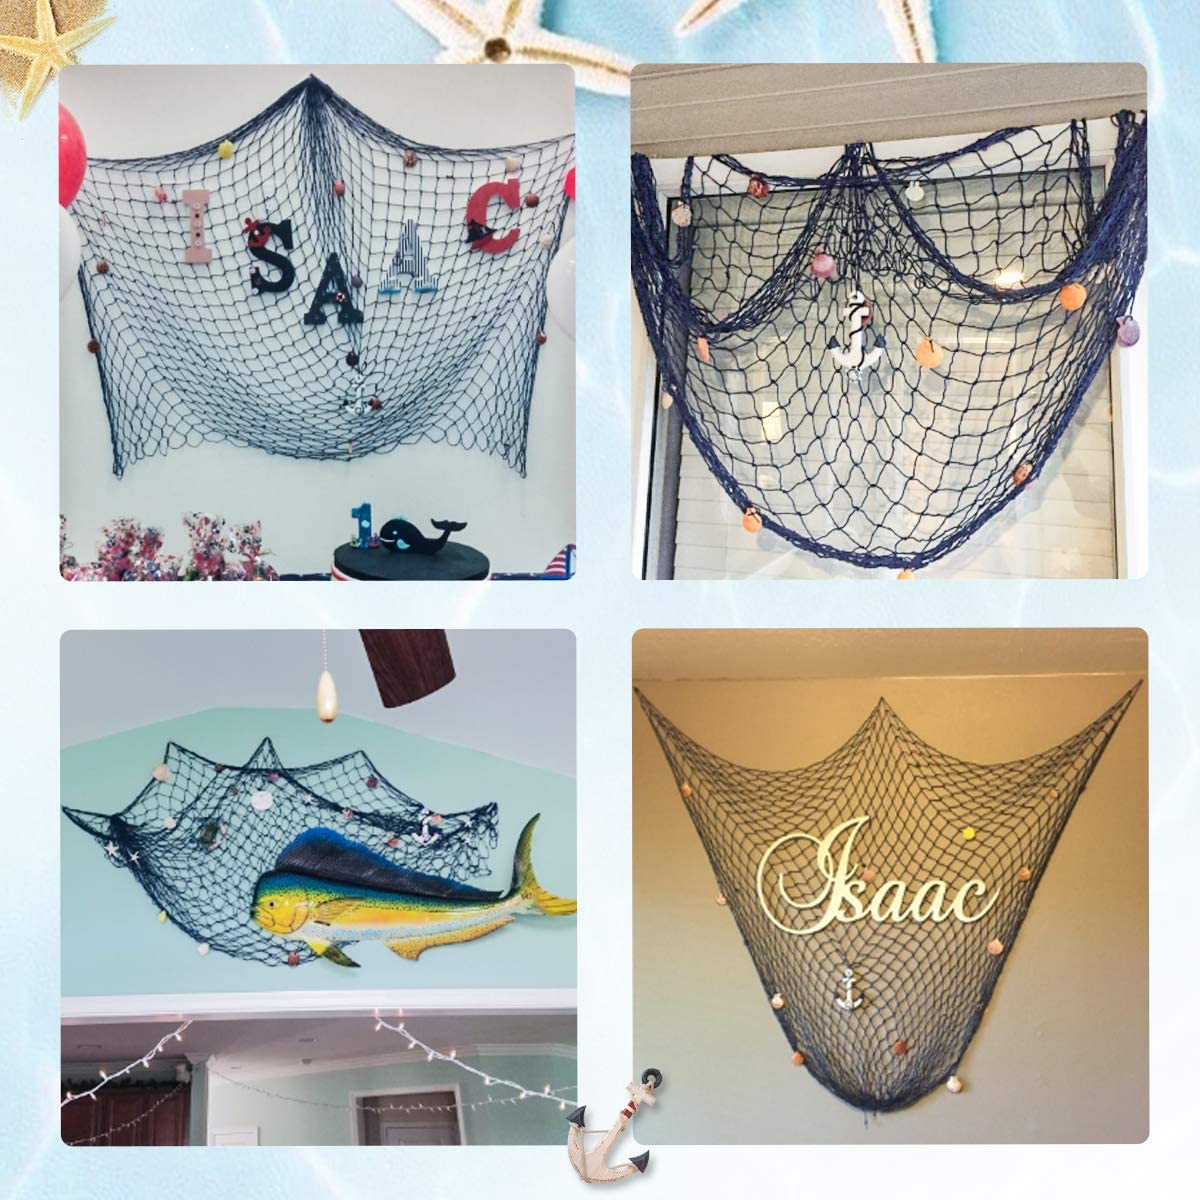 KING DO WAY Decorative Fish Netting Fishing Net Decoration 79/×59inch Ocean Pirate Beach Theme for Party Home Decorations Mediterranean Style Decor Nautical Decorative Fish Net with Sea Shells and Anchor Blue /… blue